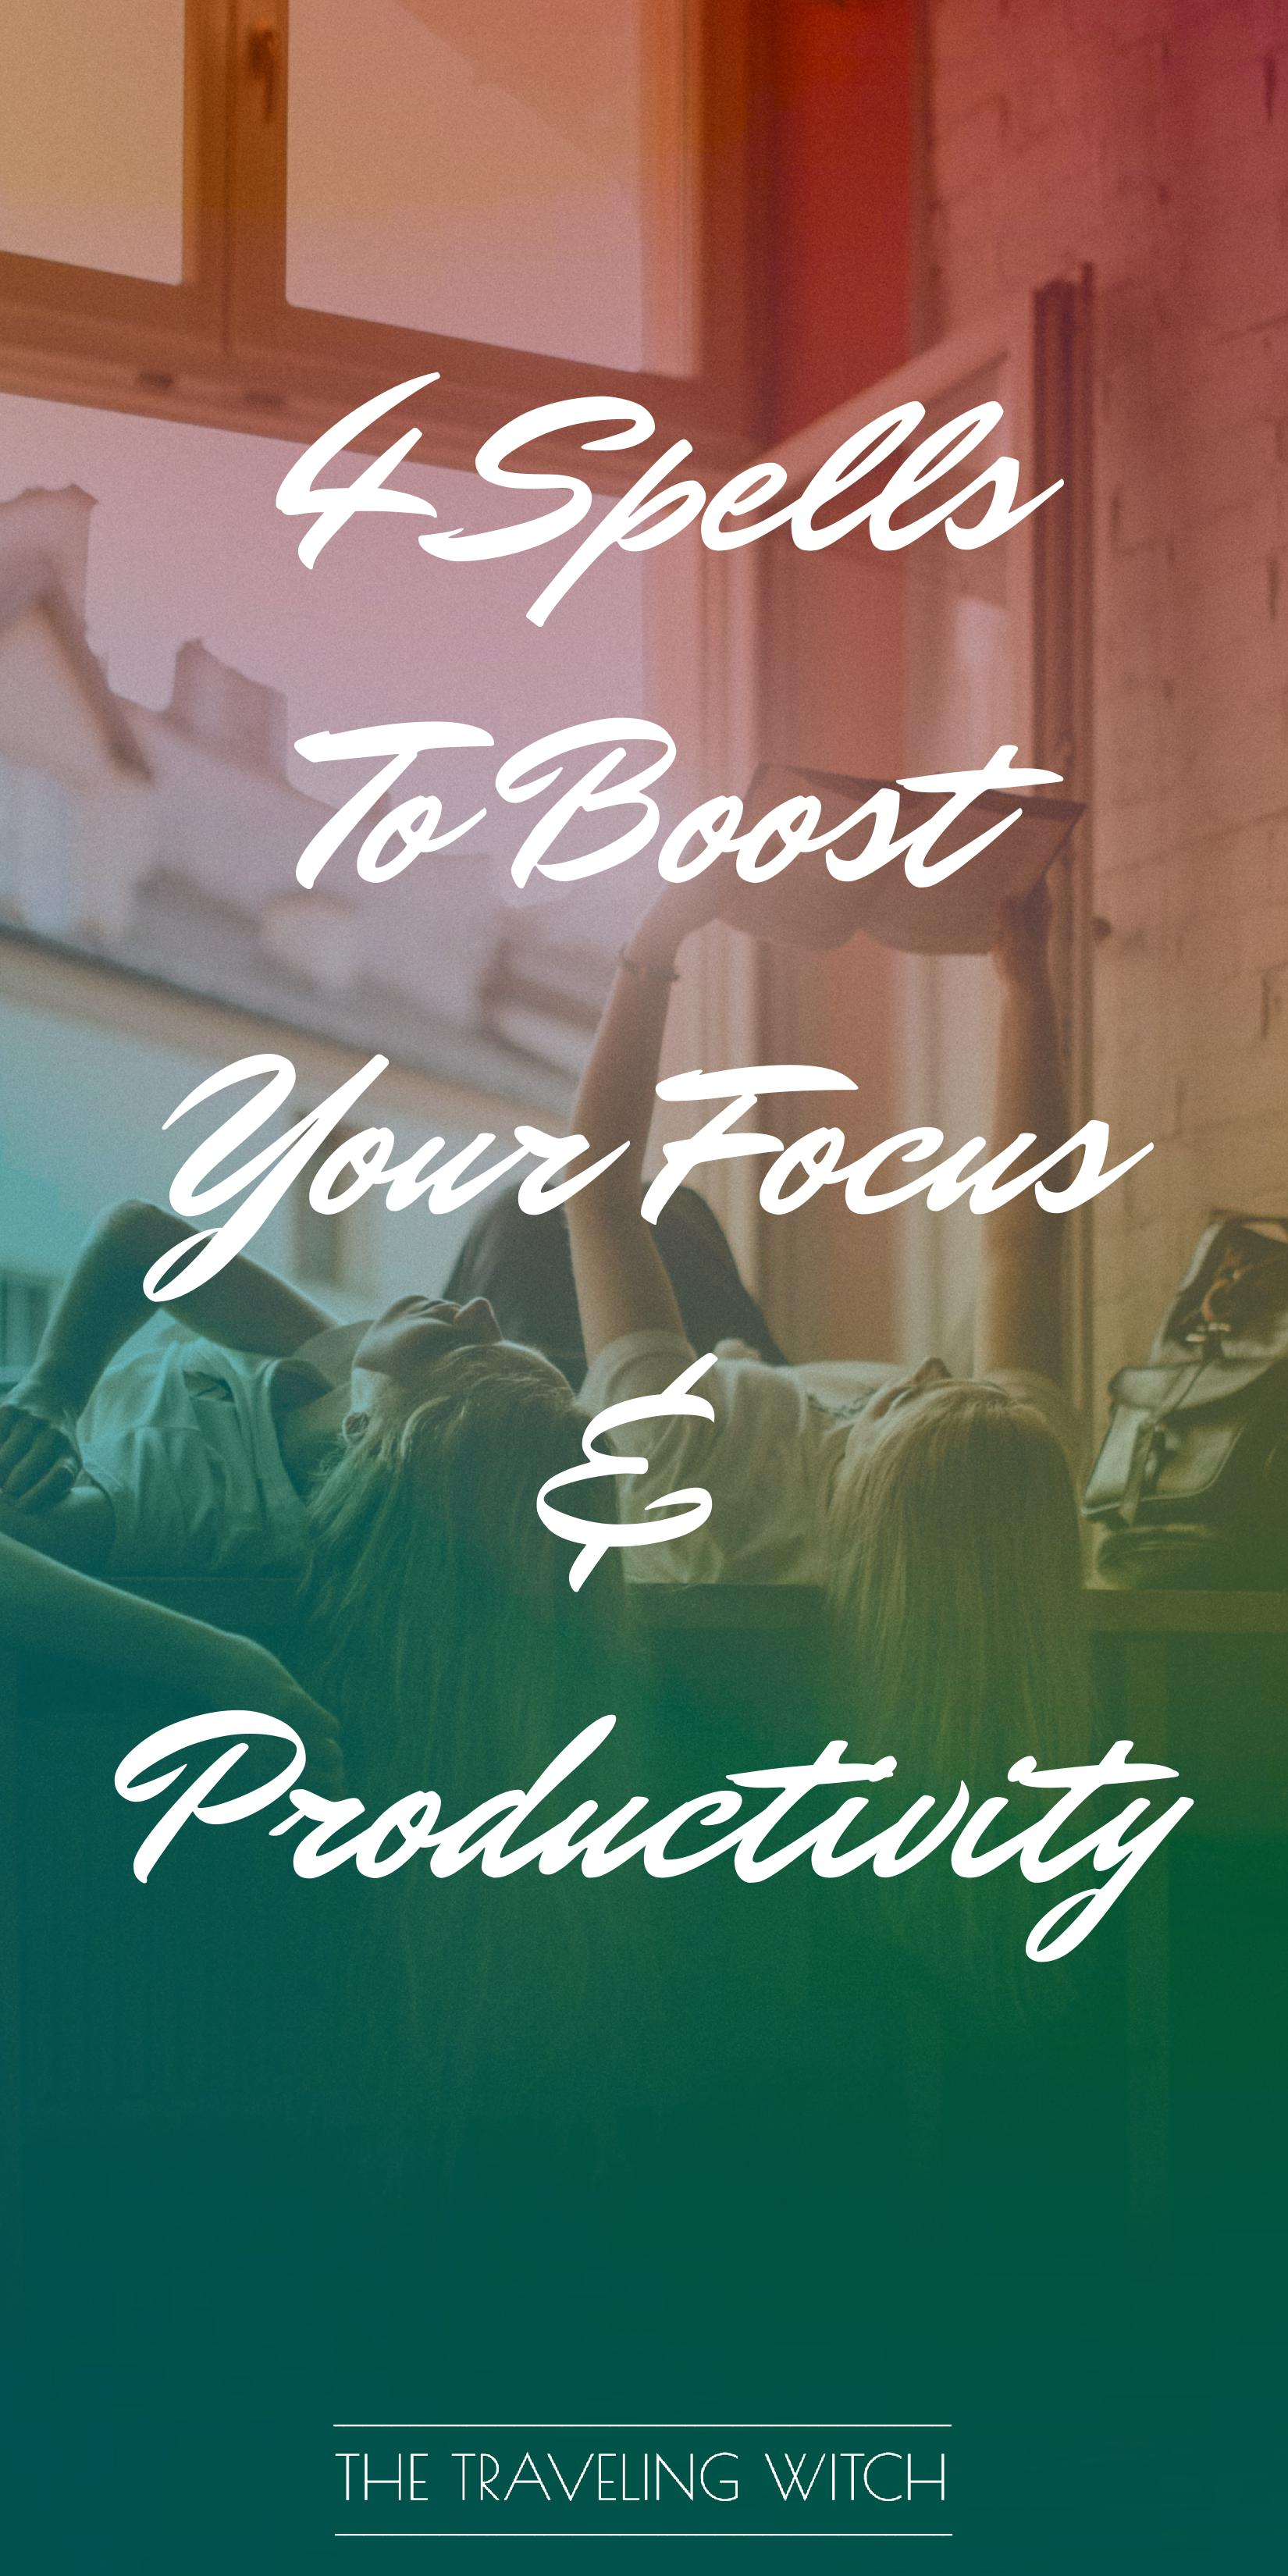 4 Spells To Boost Your Focus & Productivity by The Traveling Witch